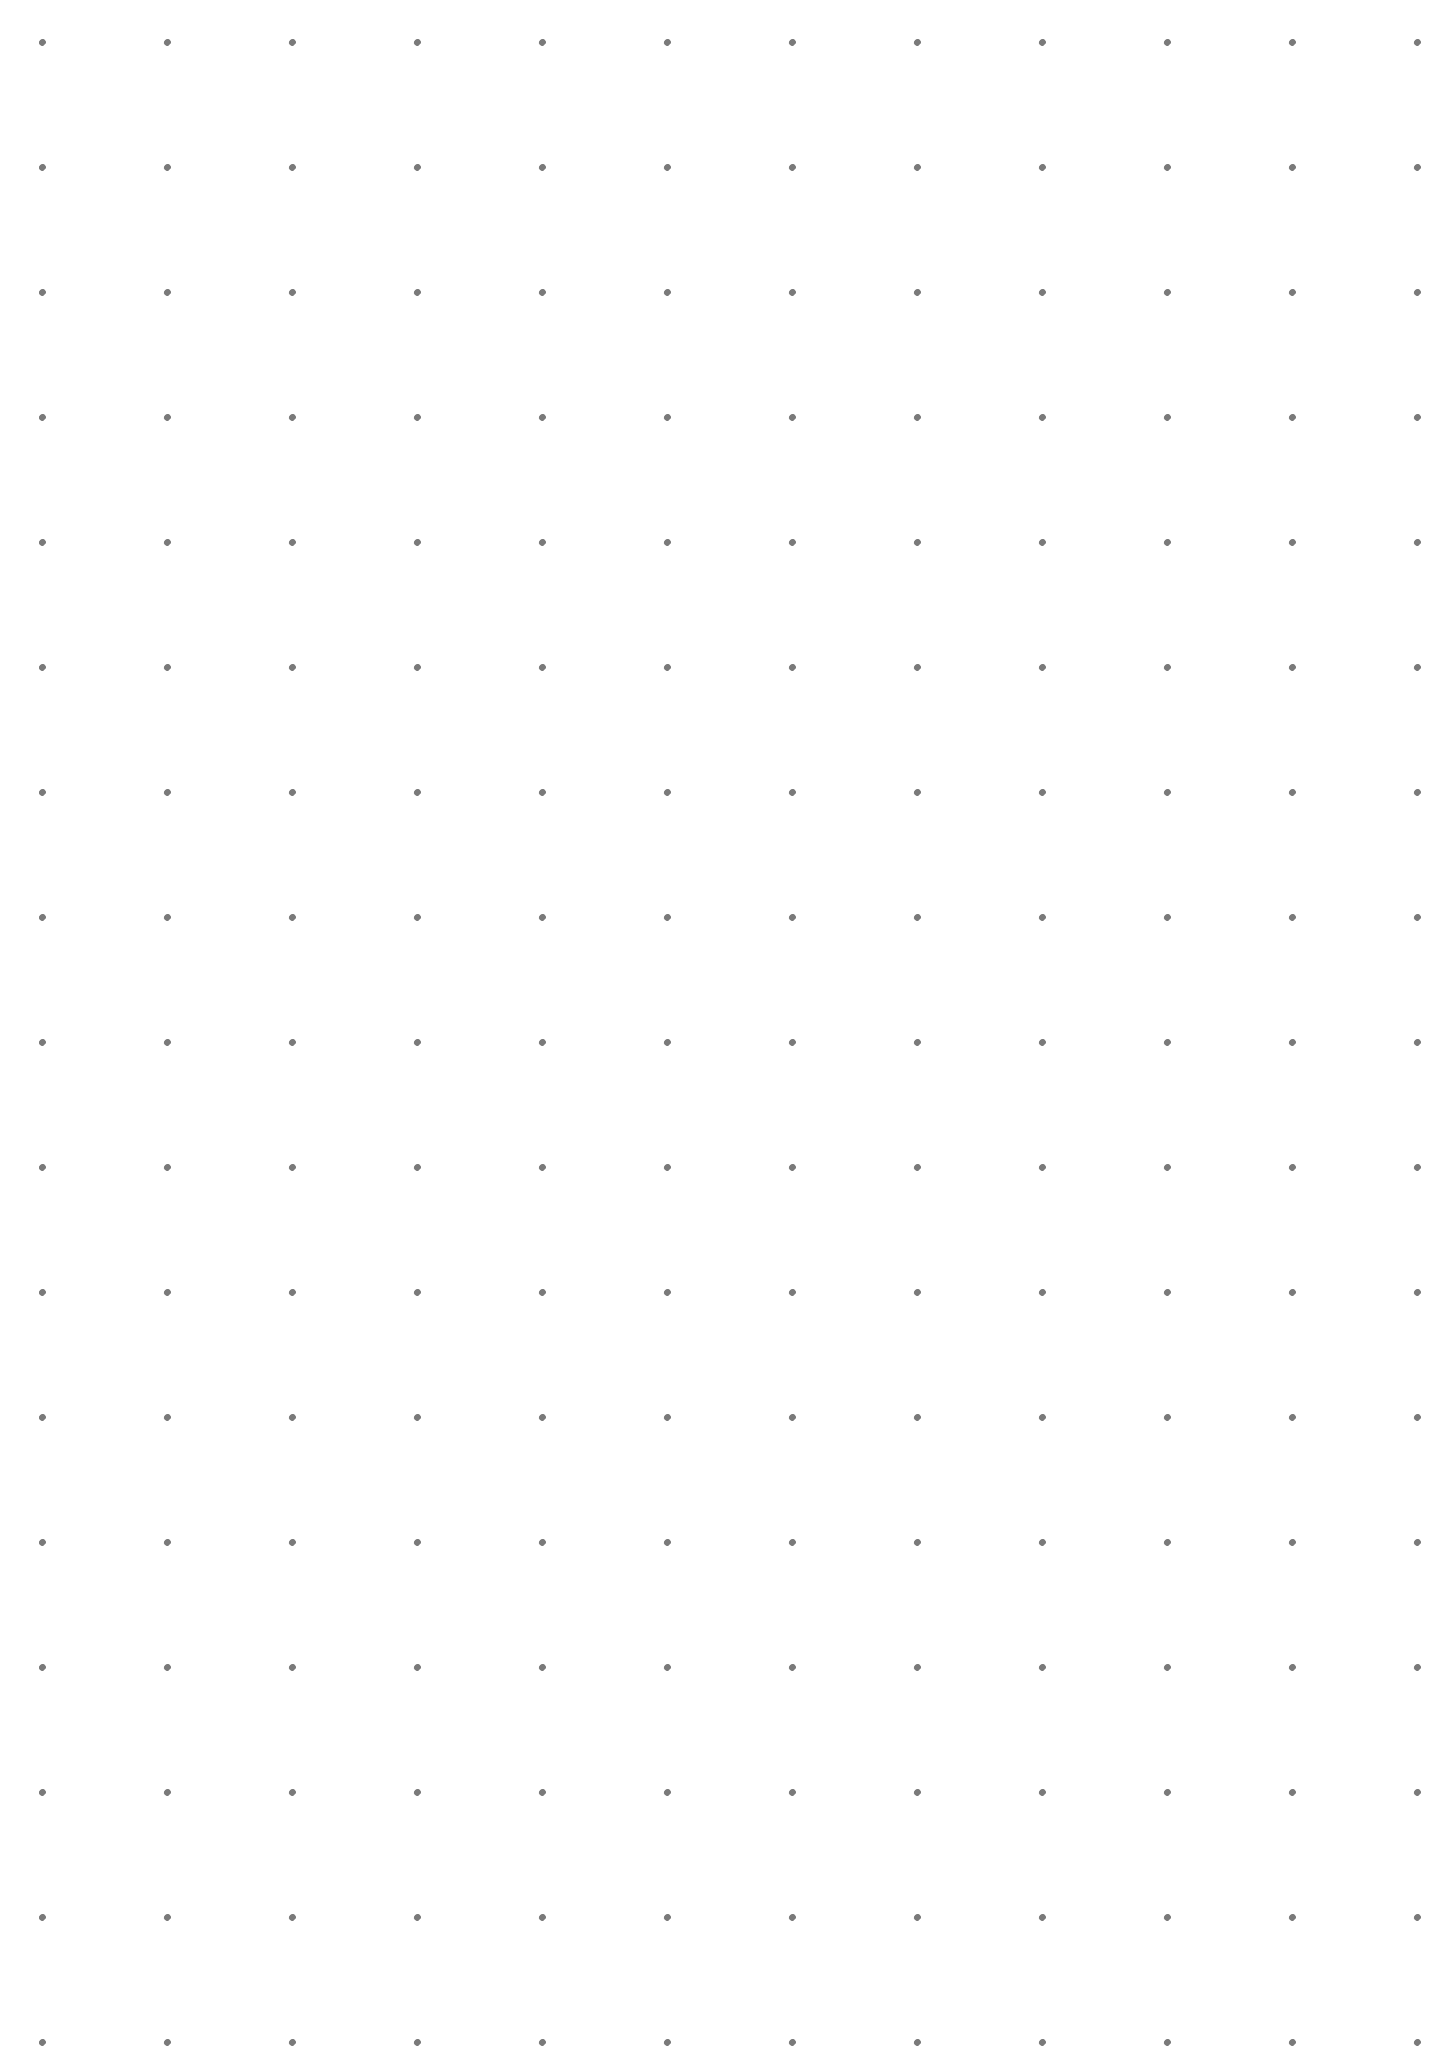 Printable Dot Grid Paper With 2 Dots Per Inch Pdf Download Grid Paper Grid Paper Printable Paper Templates Printable